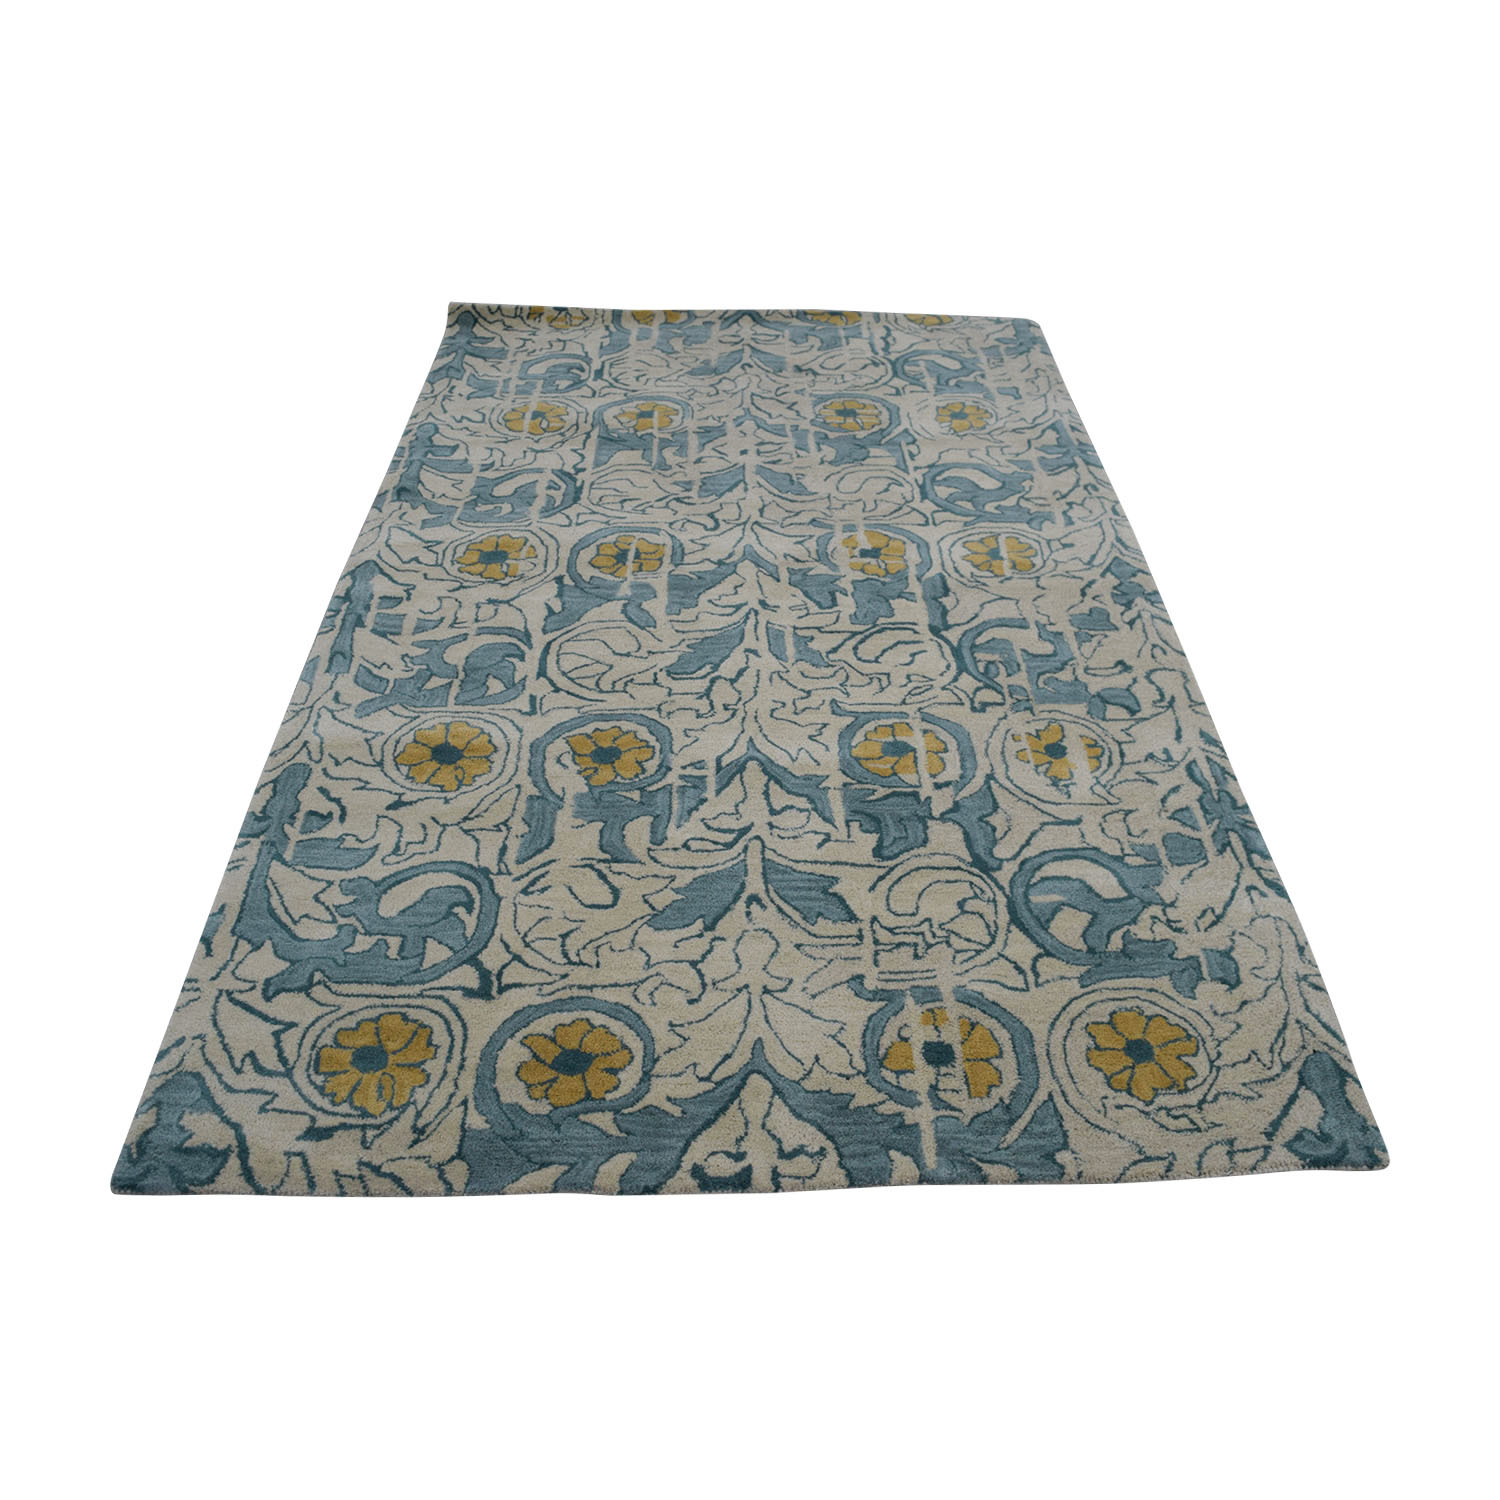 buy Obeetee Obeetee Flatweave Beige and Blue Floral Wool Rug online